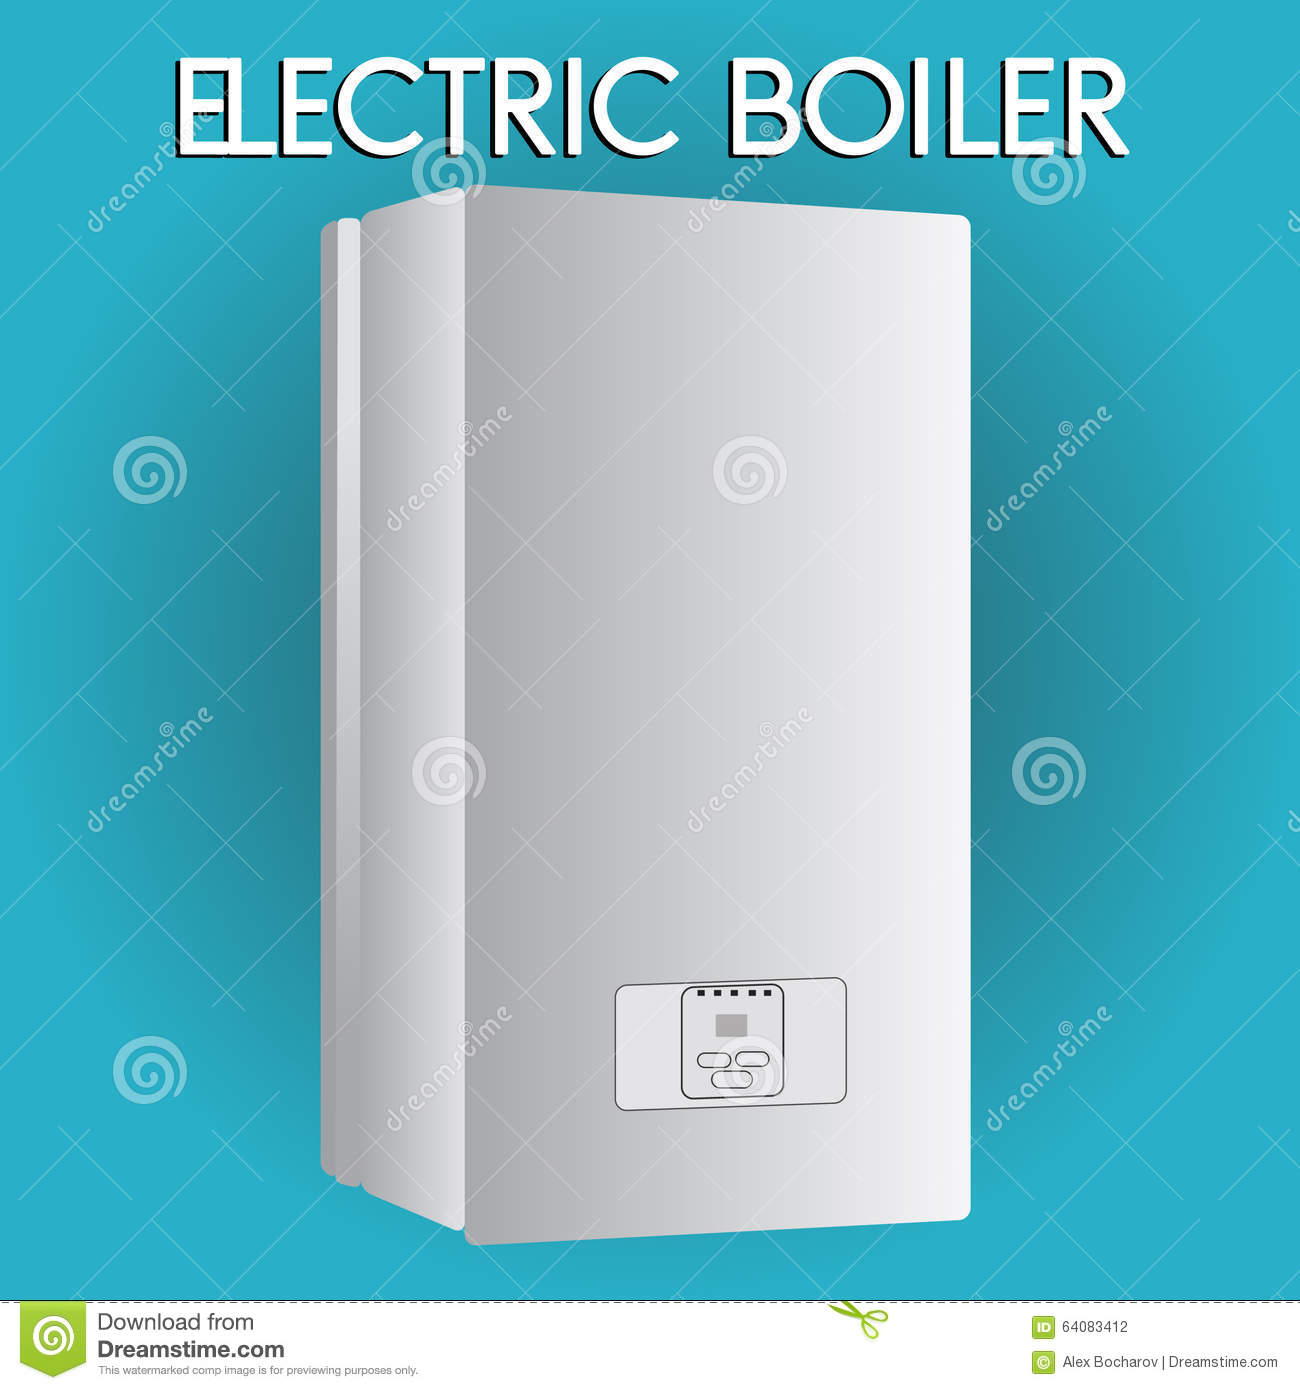 Electric Boiler. House Heating. Stock Vector - Illustration of ...